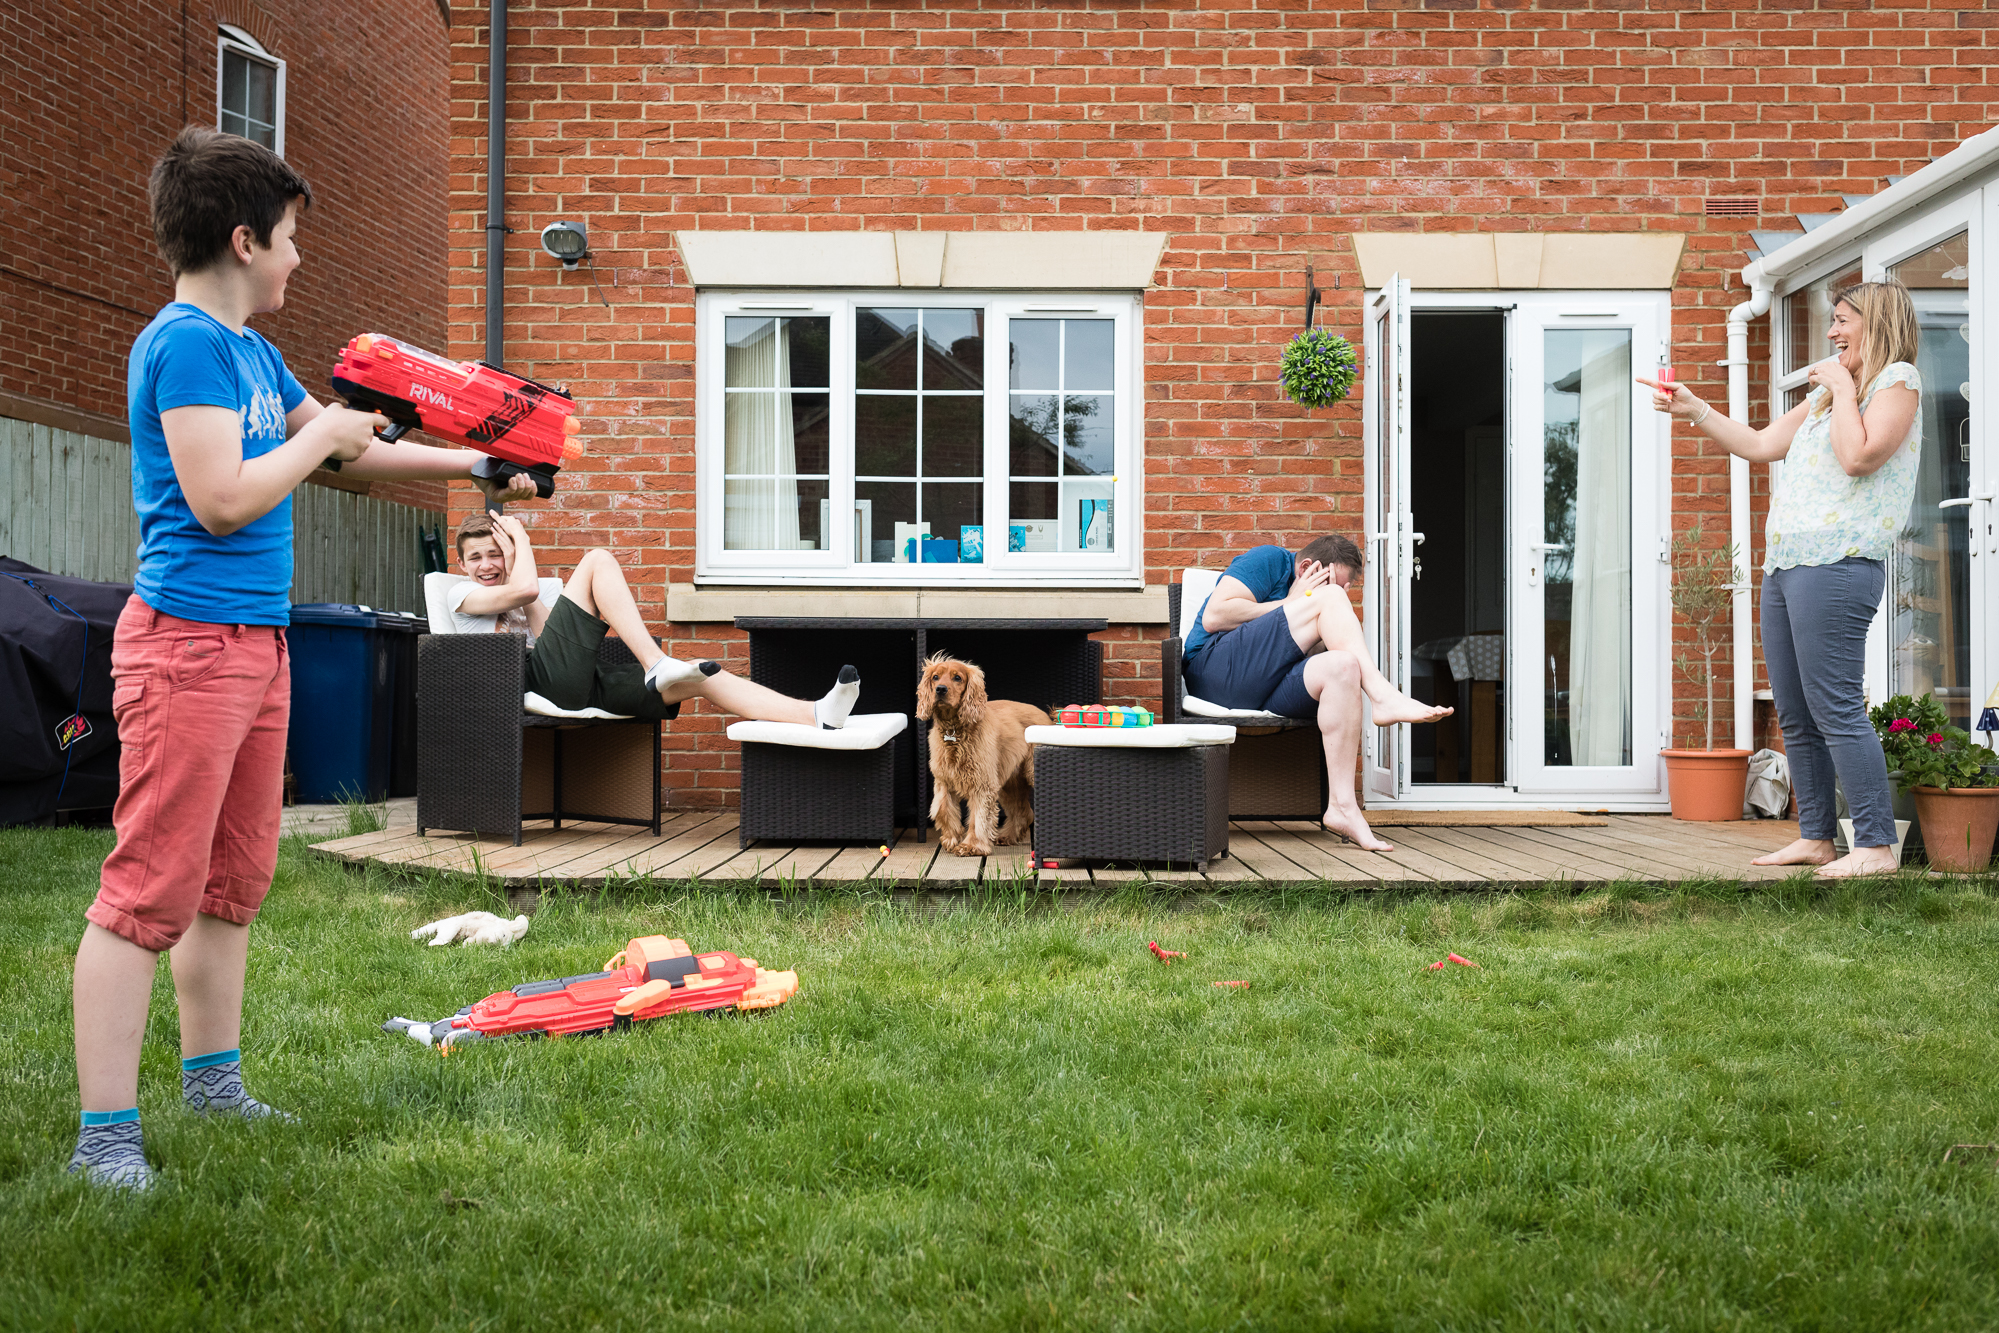 Alice_Chapman_Photography_Cambourne_Family-14.jpg